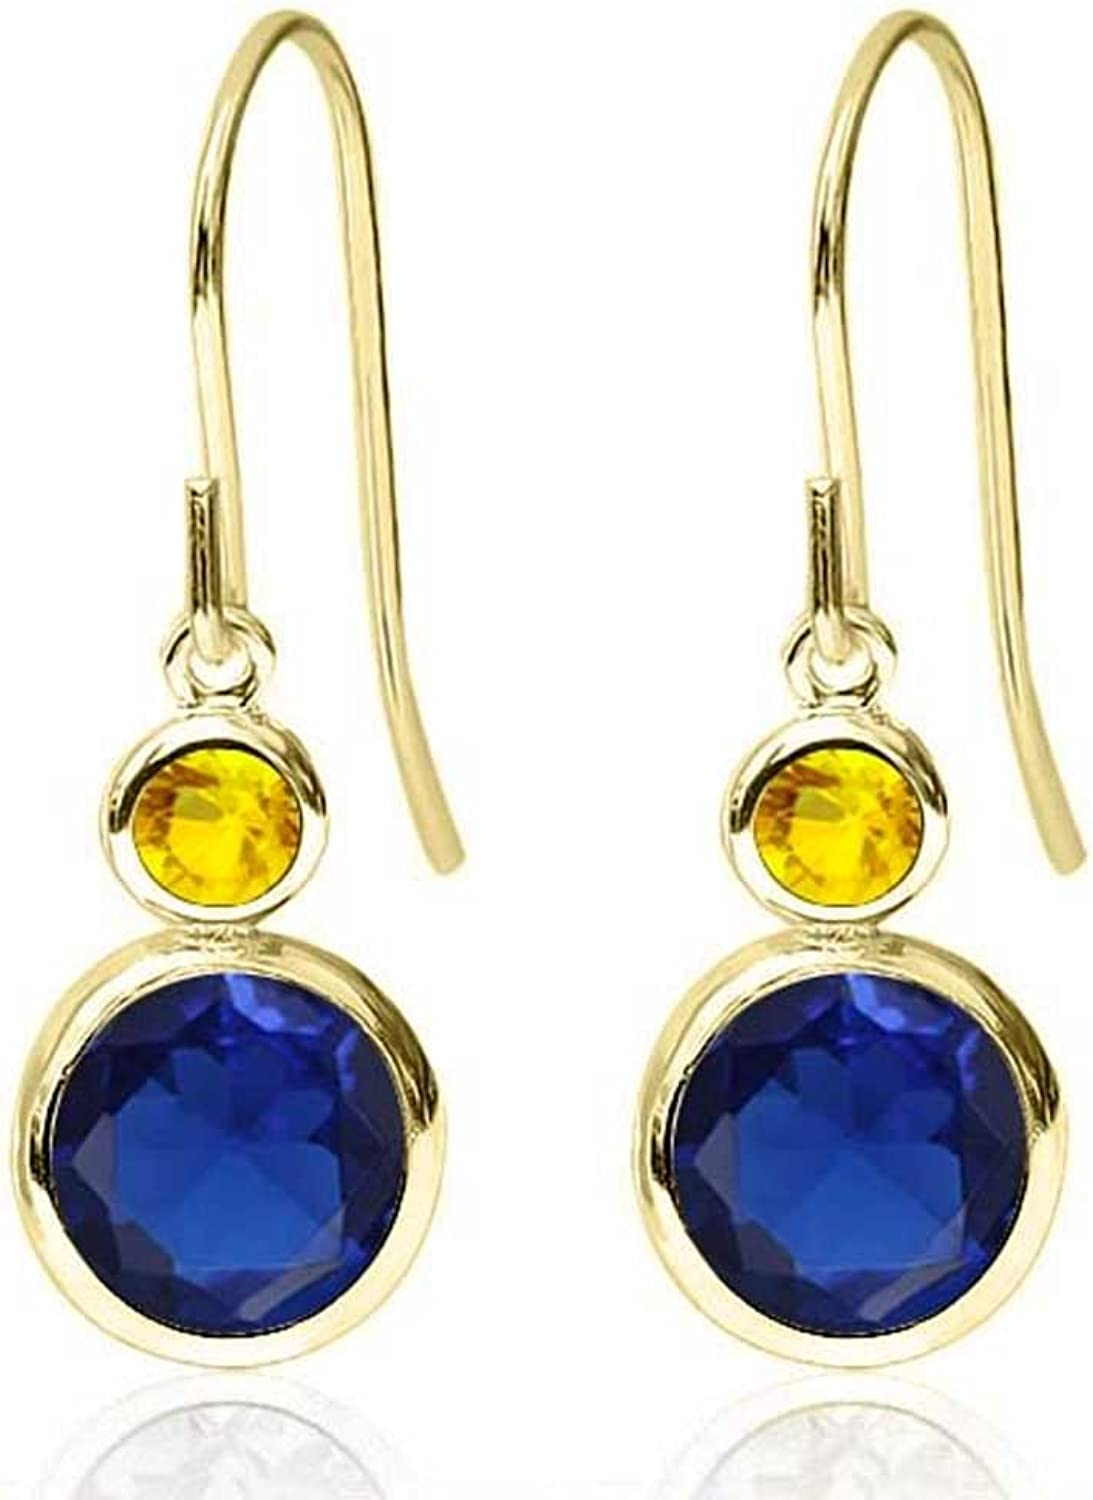 2.26 Ct Round bluee Simulated Sapphire Yellow Sapphire 14K Yellow gold Earrings